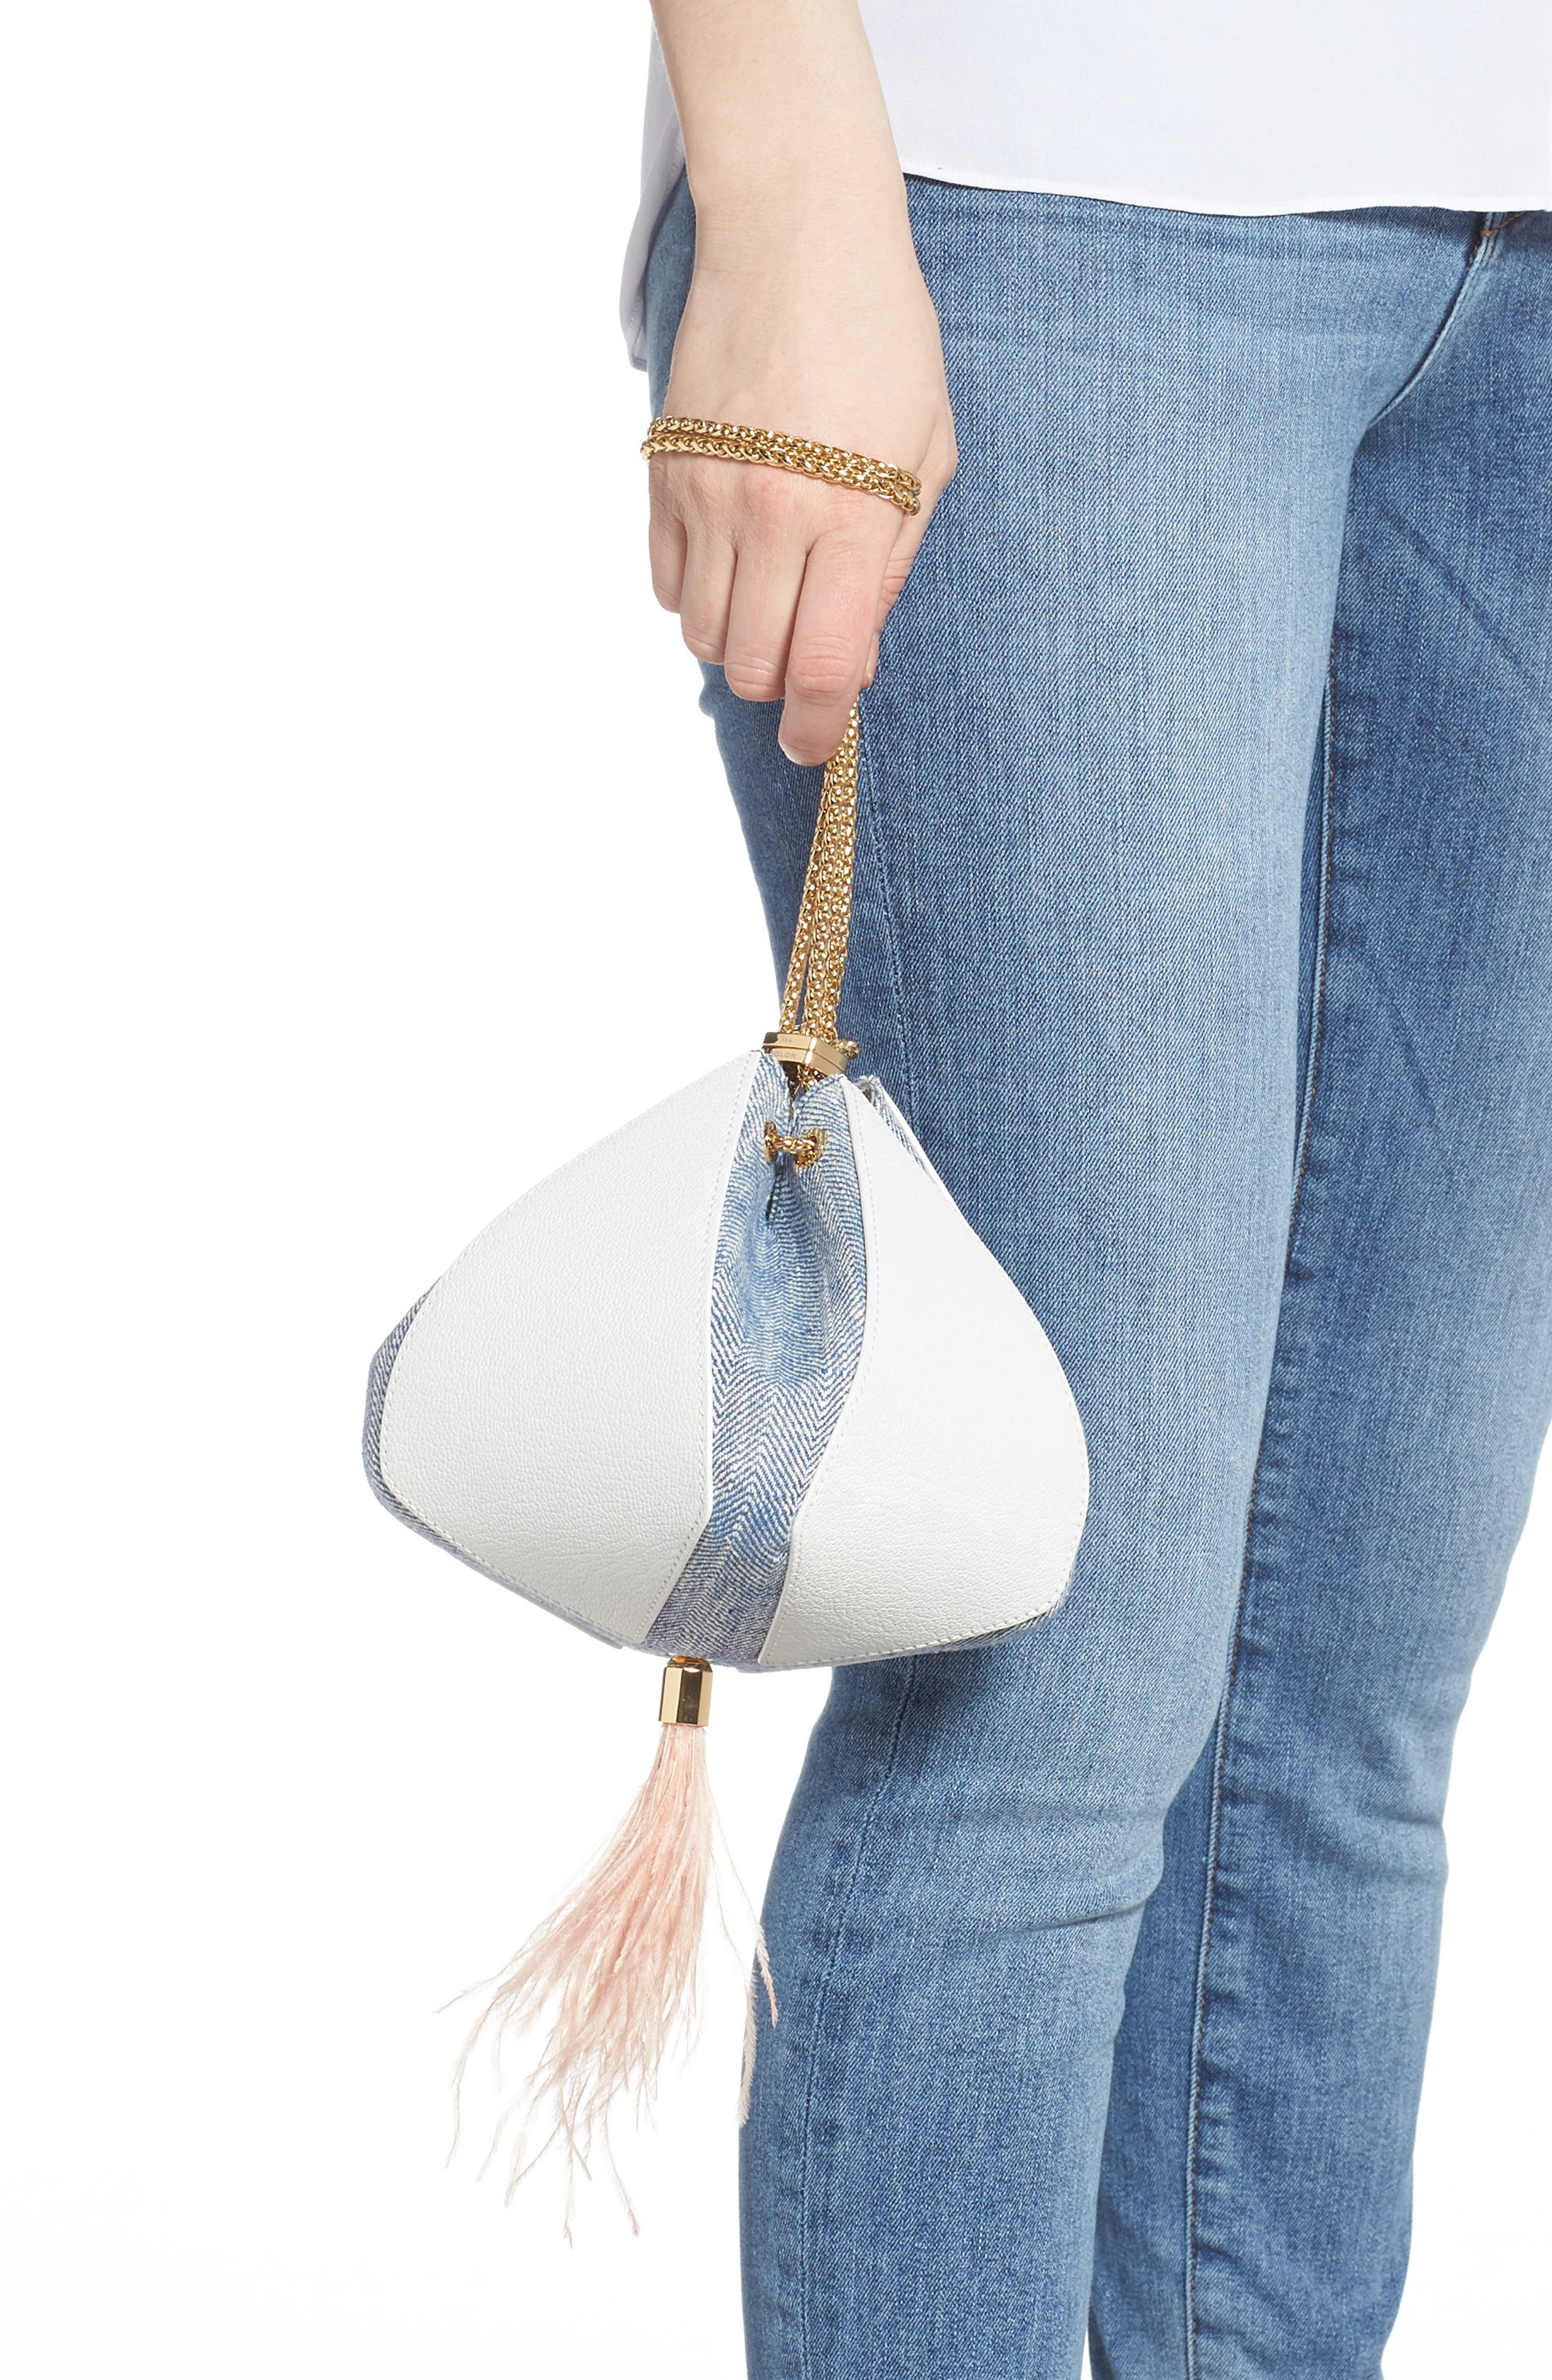 THE VOLON, Cindy Leather & Woven Clutch, Alternate thumbnail 3, color, WHITE